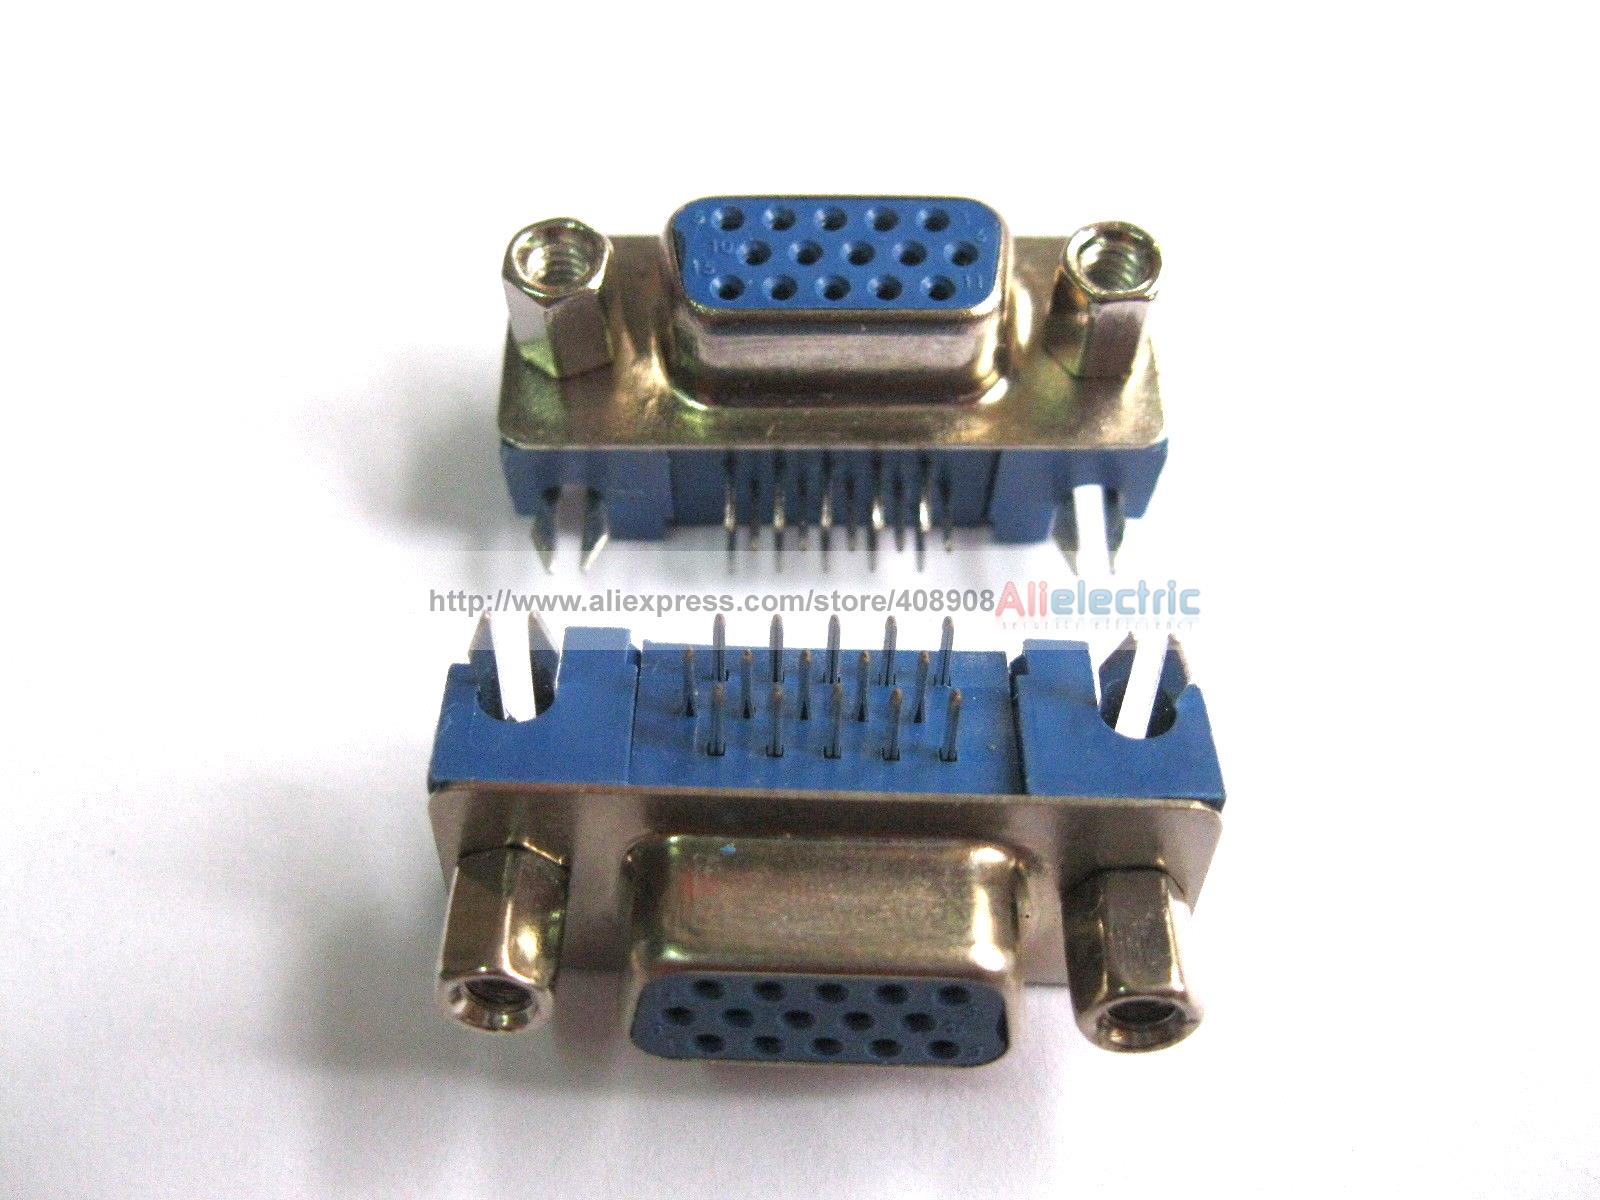 30 Pcs D Sub 15 Pin Female Connector Right Angle 3 Row Short Blue 5 pcs dual usb 3 0 type a 18 pin female right angle socket connector